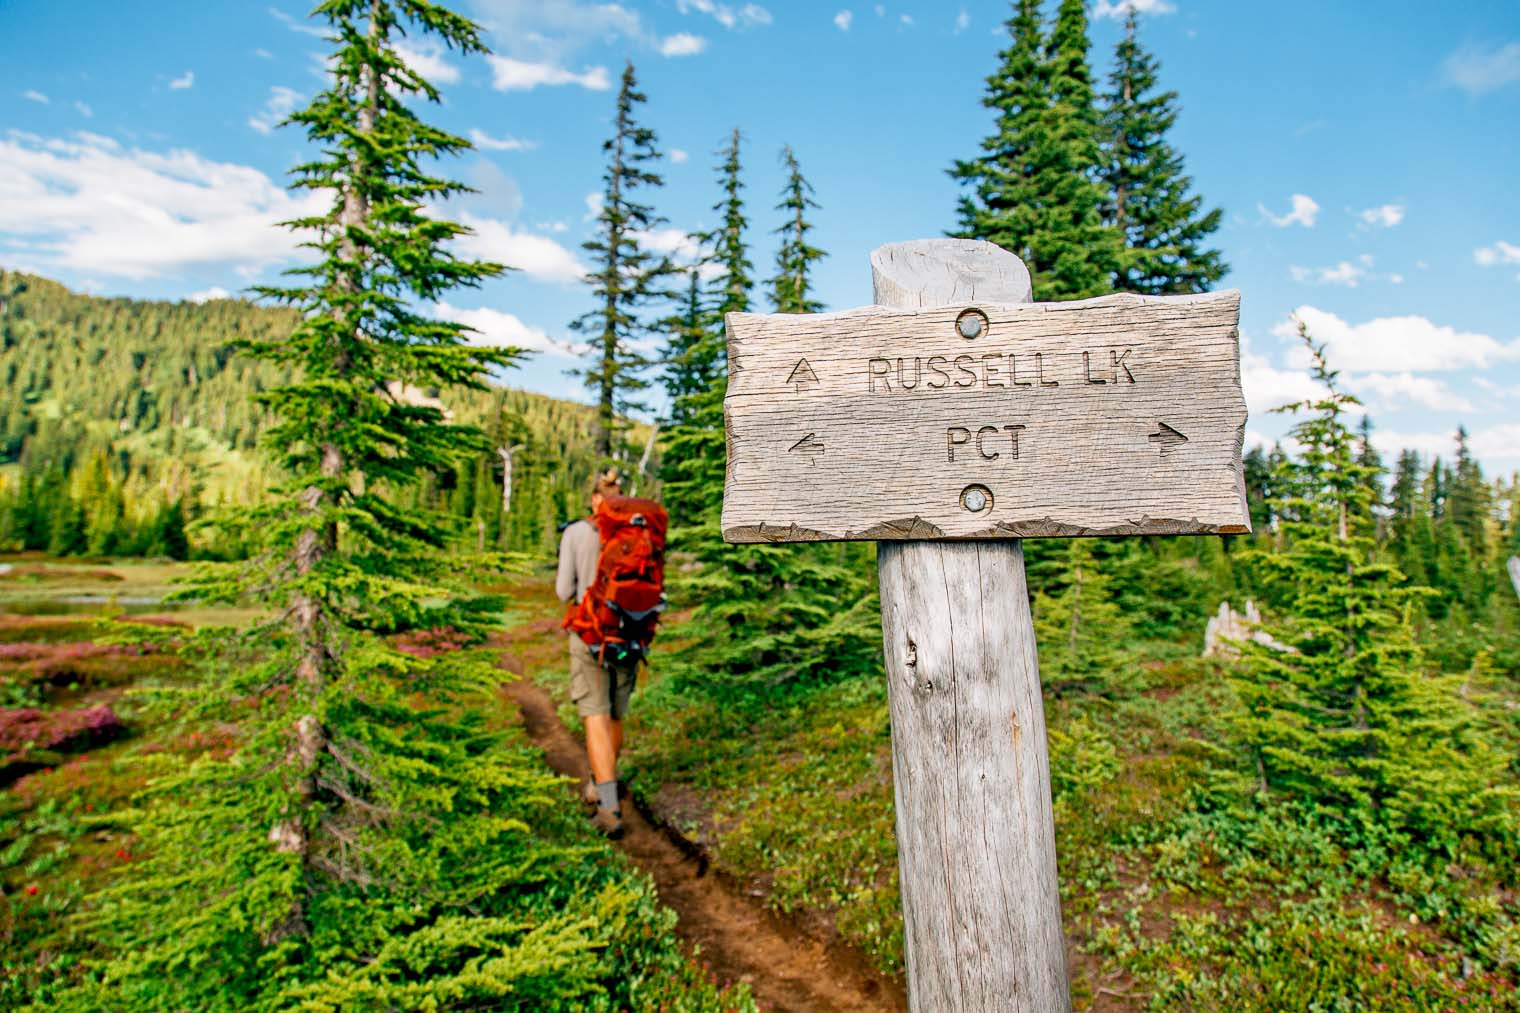 A bucket list worthy overnight hike: Russell Lake in Jefferson Wilderness, Oregon